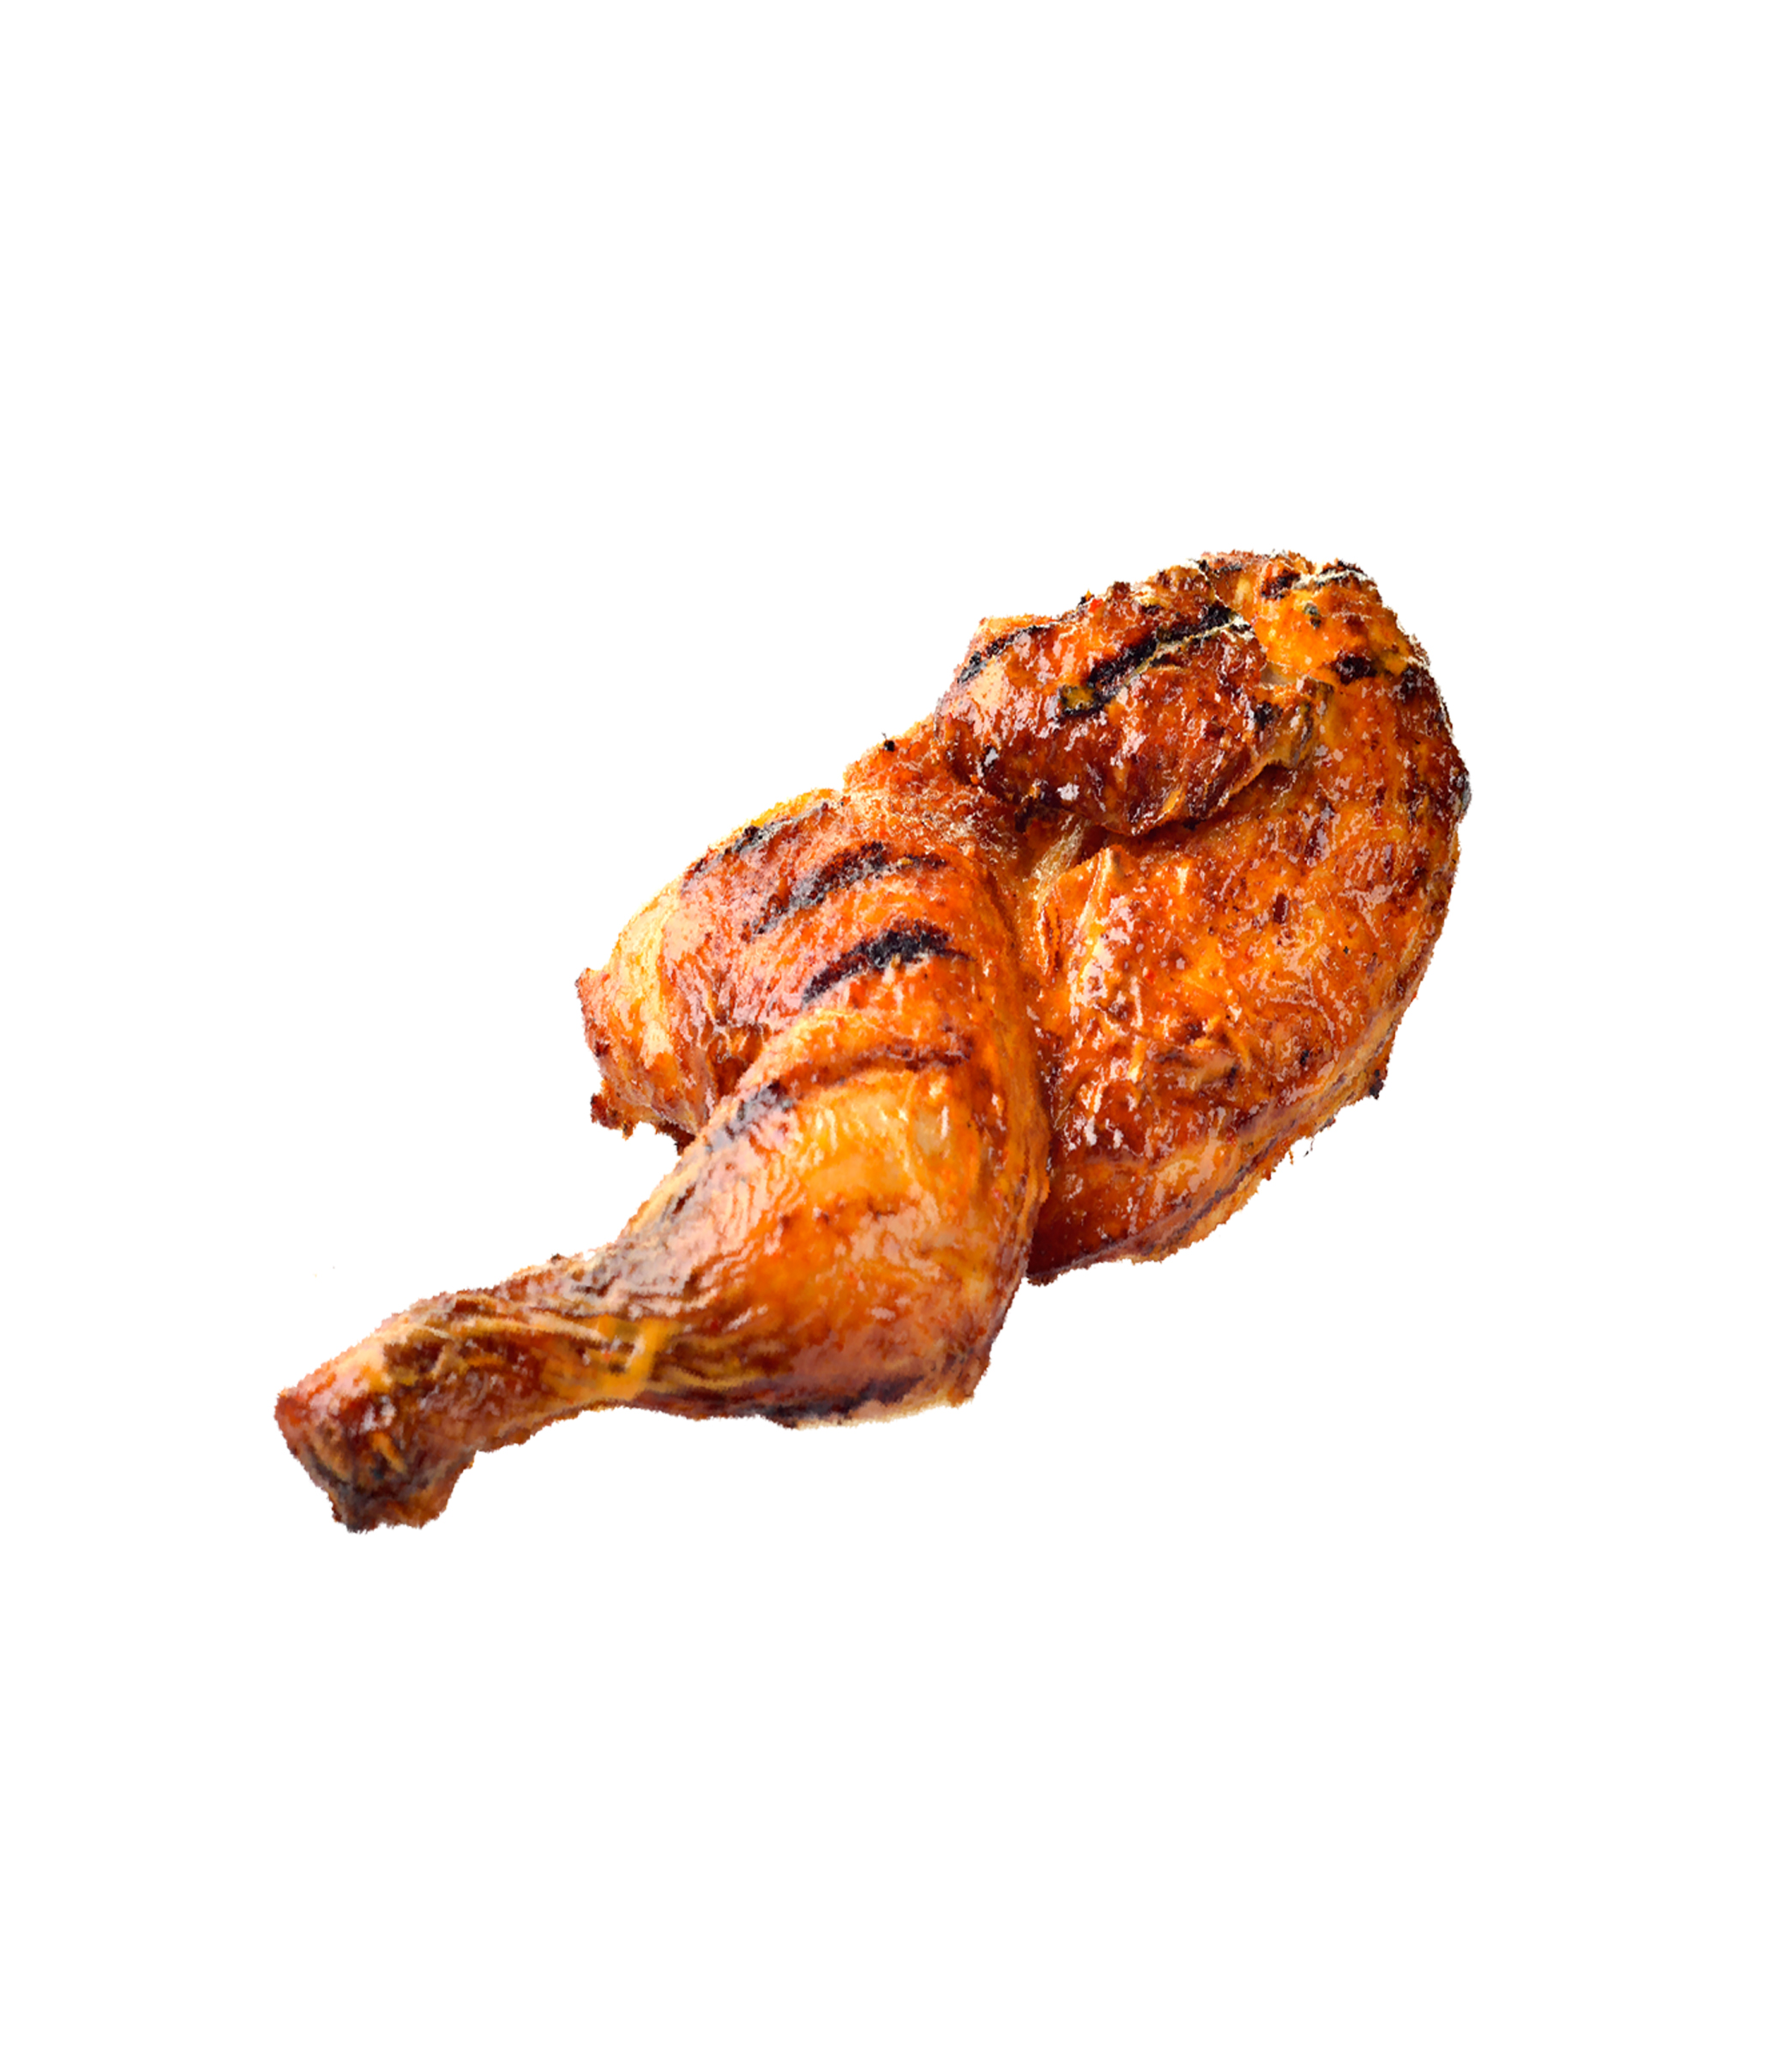 Grilled Chicken Png (104+ images in Collection) Page 1.